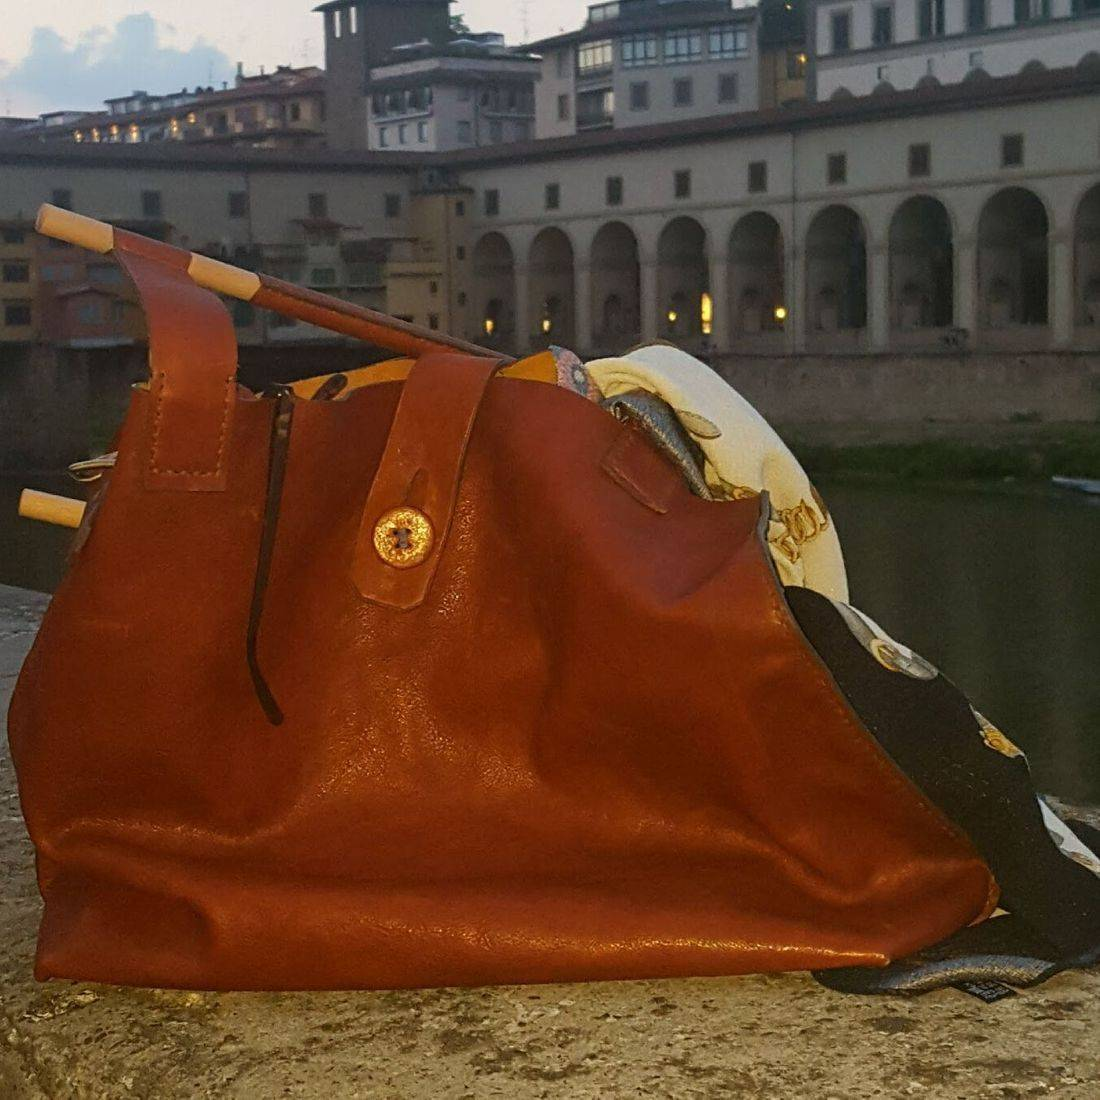 leather bag, florentine artisan, custom leather bag, bespoke, custom made bags, leather bags from Florence